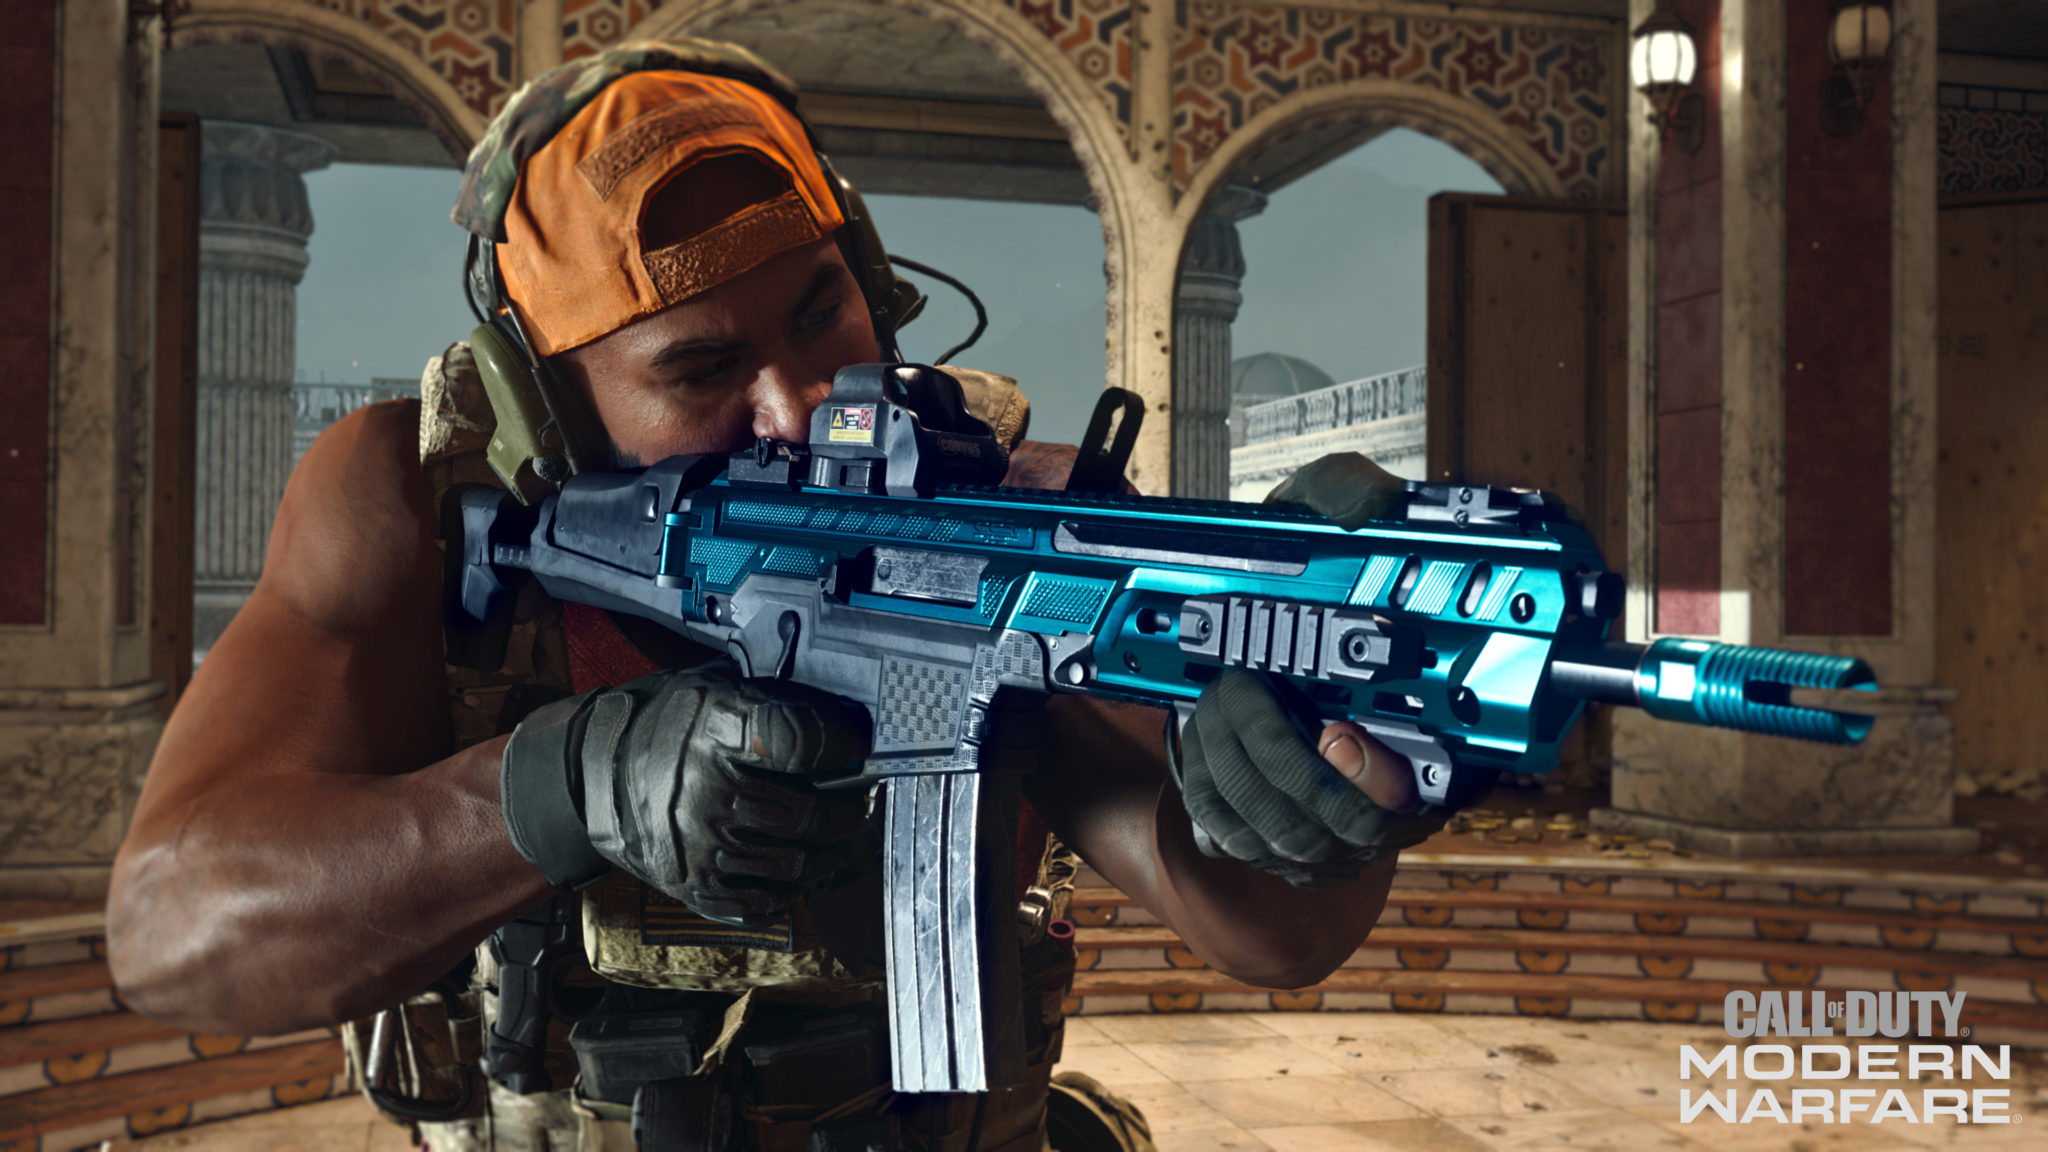 A Warzone player aims down sights with their gun.